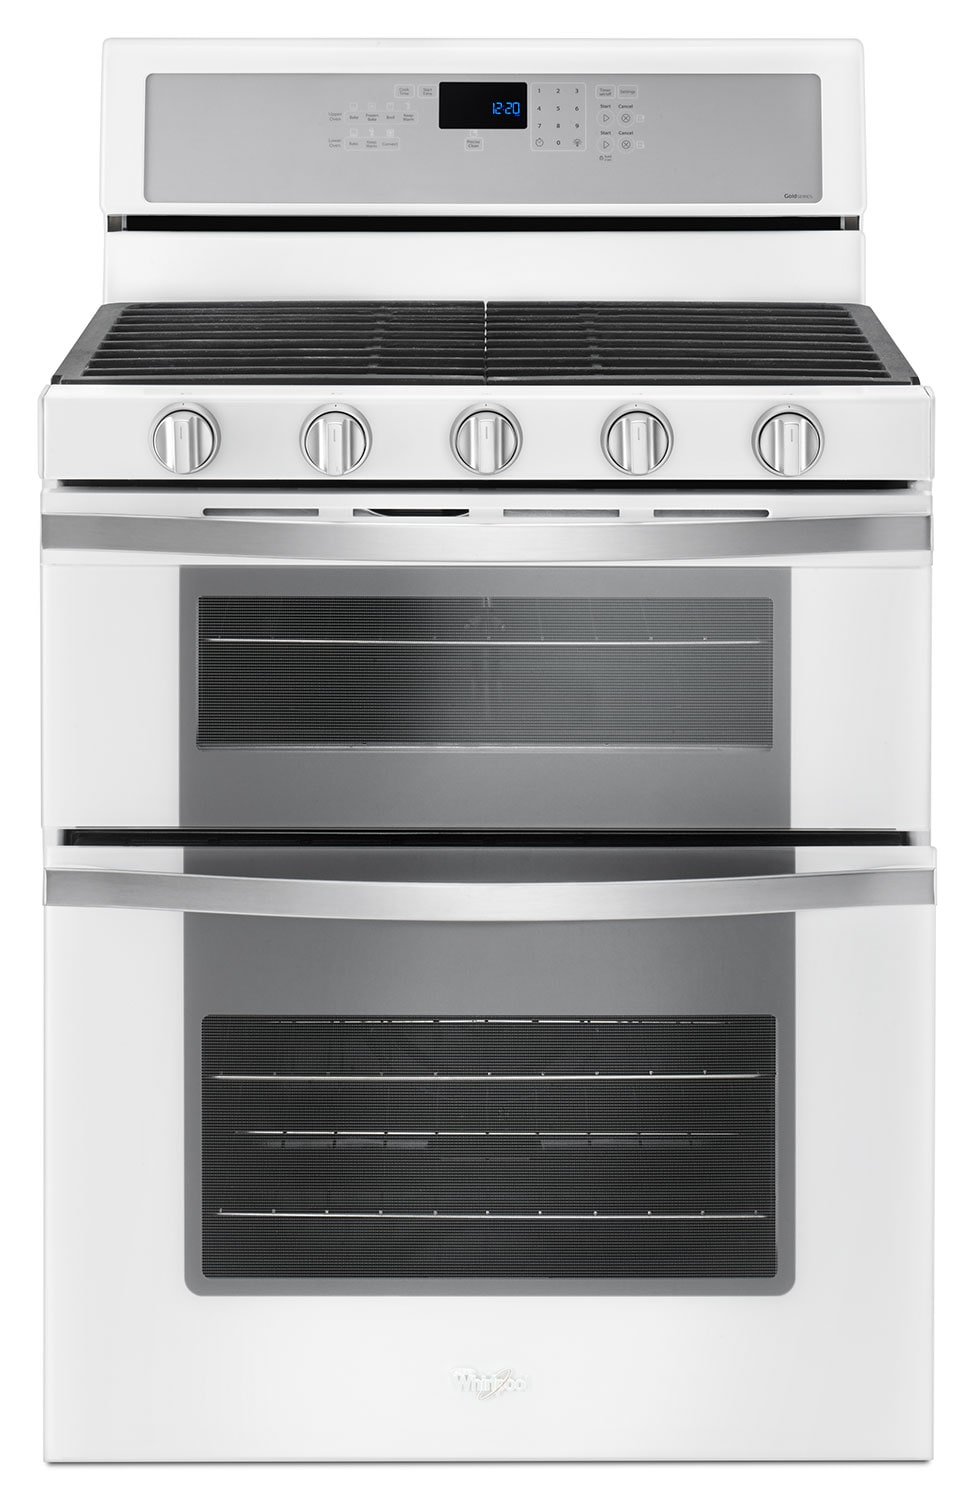 Whirlpool White Freestanding Double Gas Range (6.0 Cu. Ft.) - WGG745S0FH